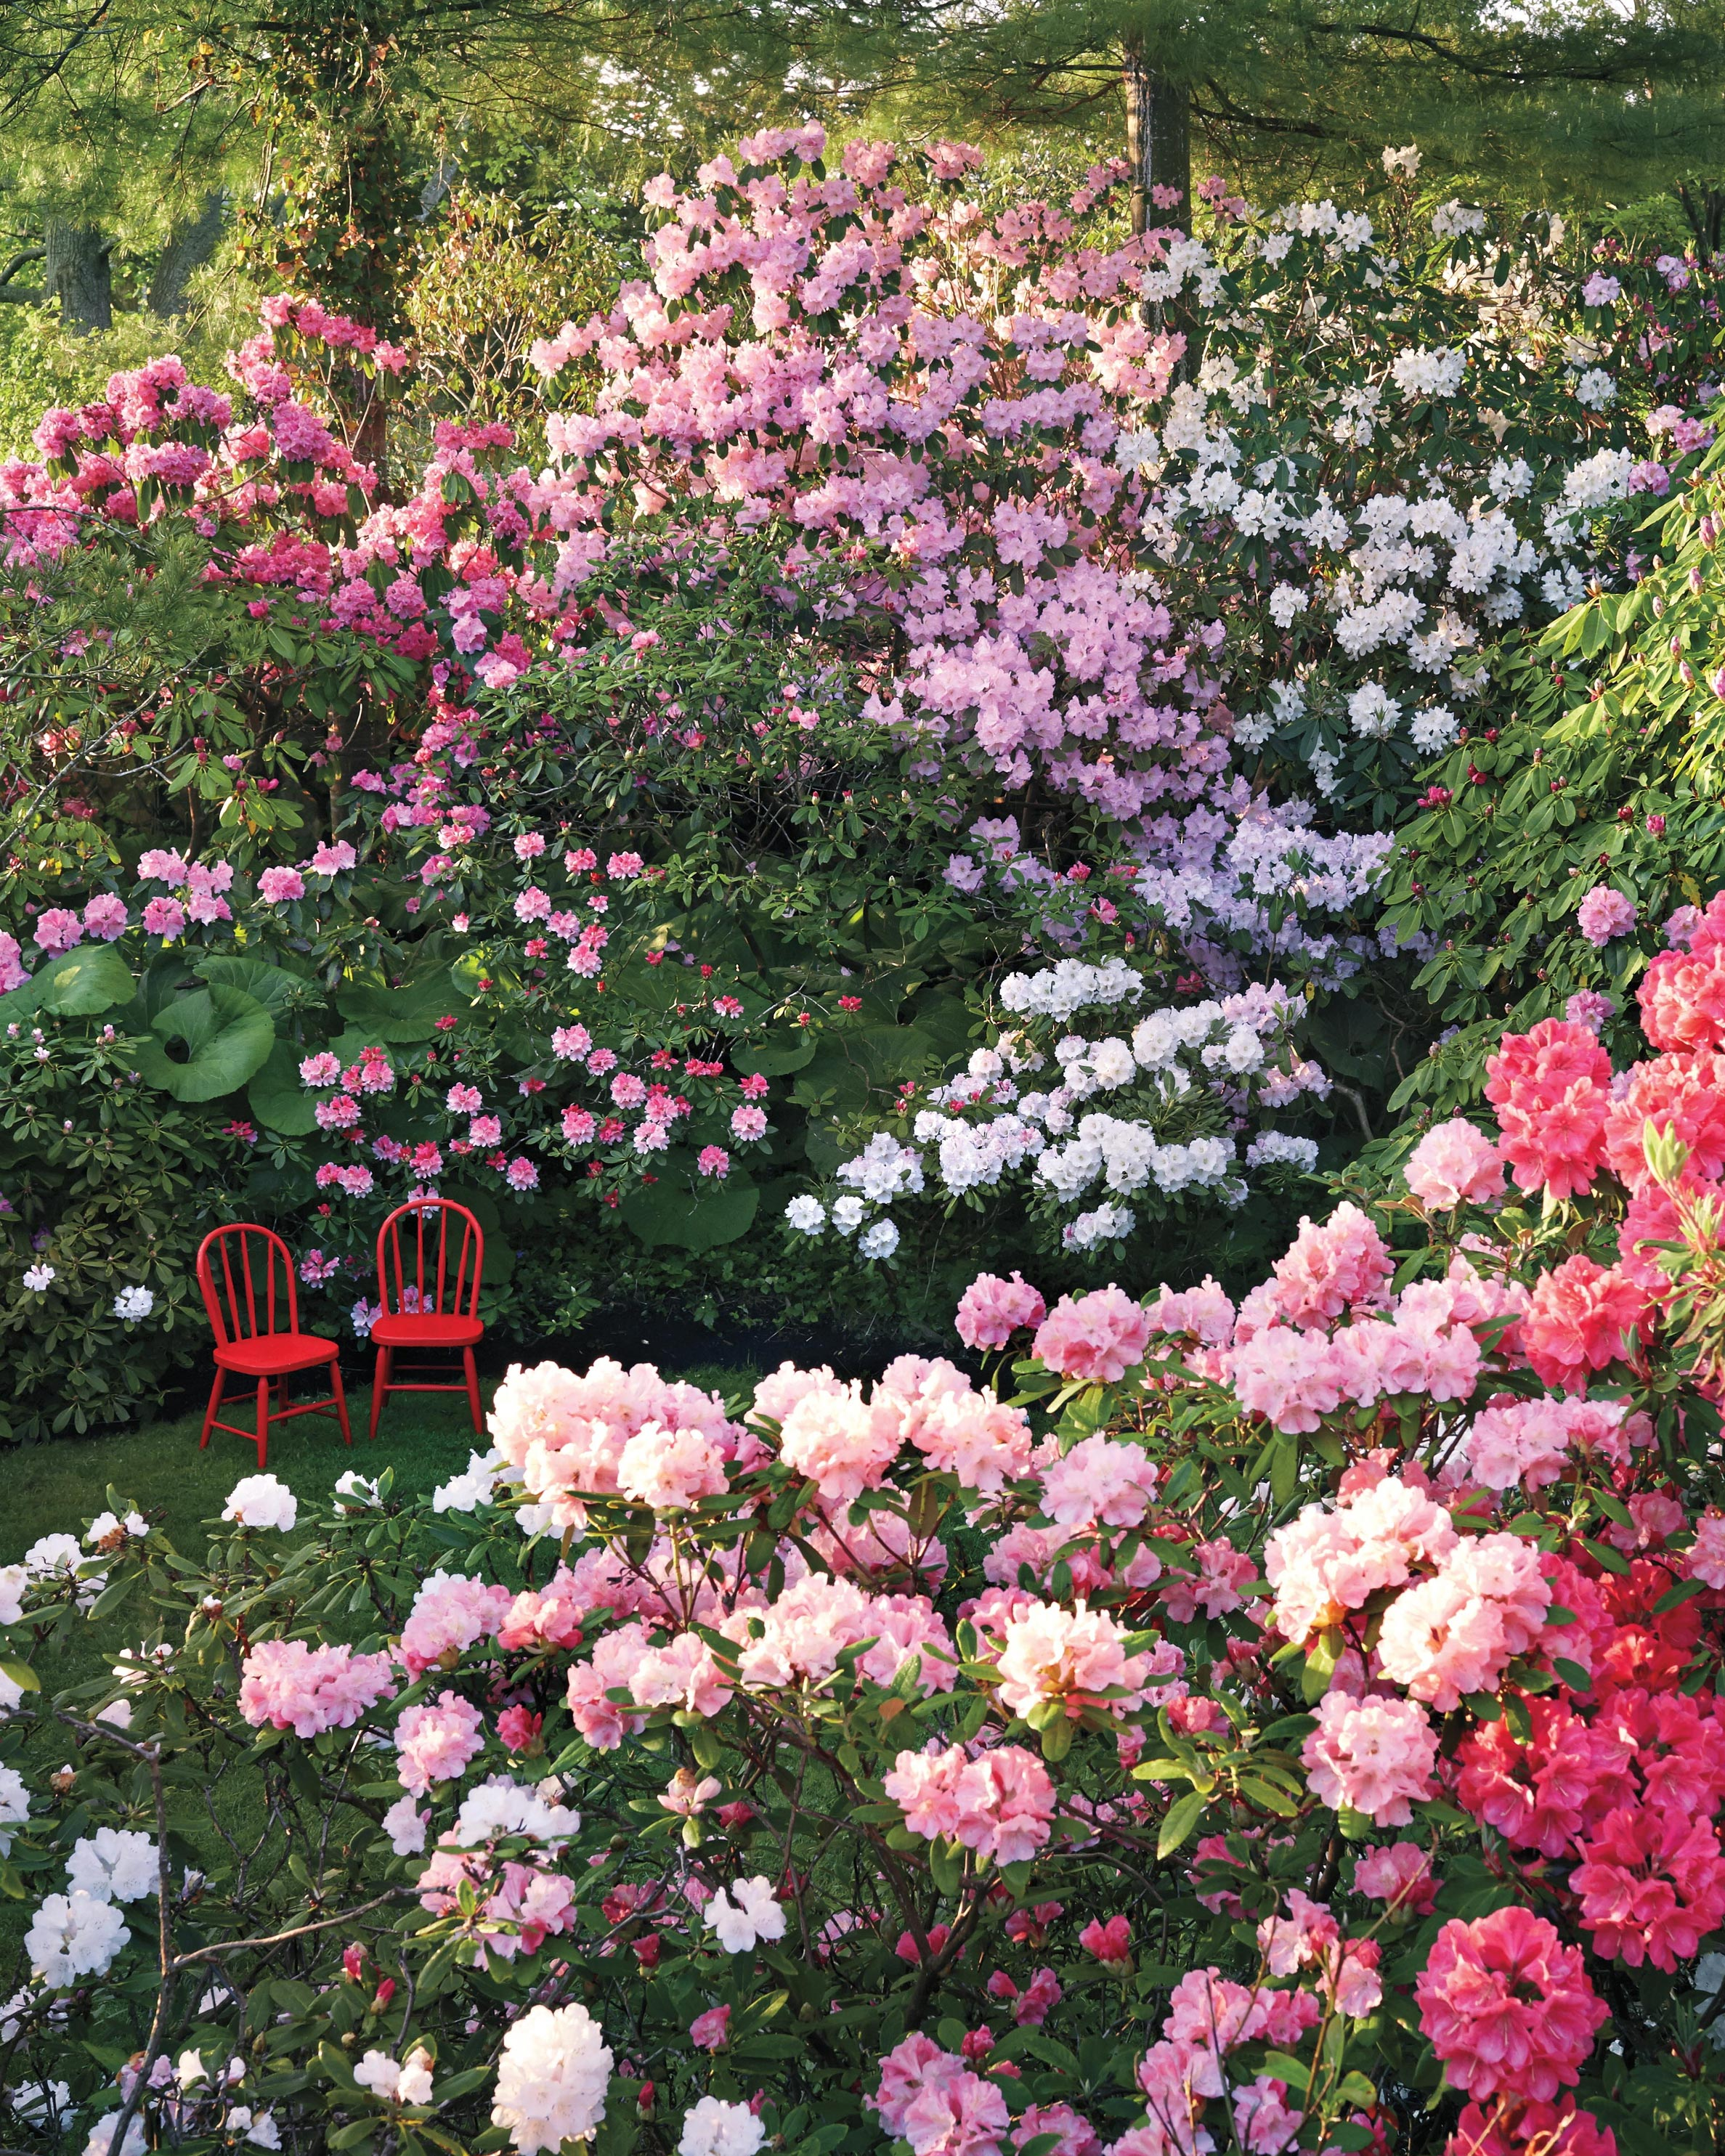 The Best Gardens to Visit Around the U.S.